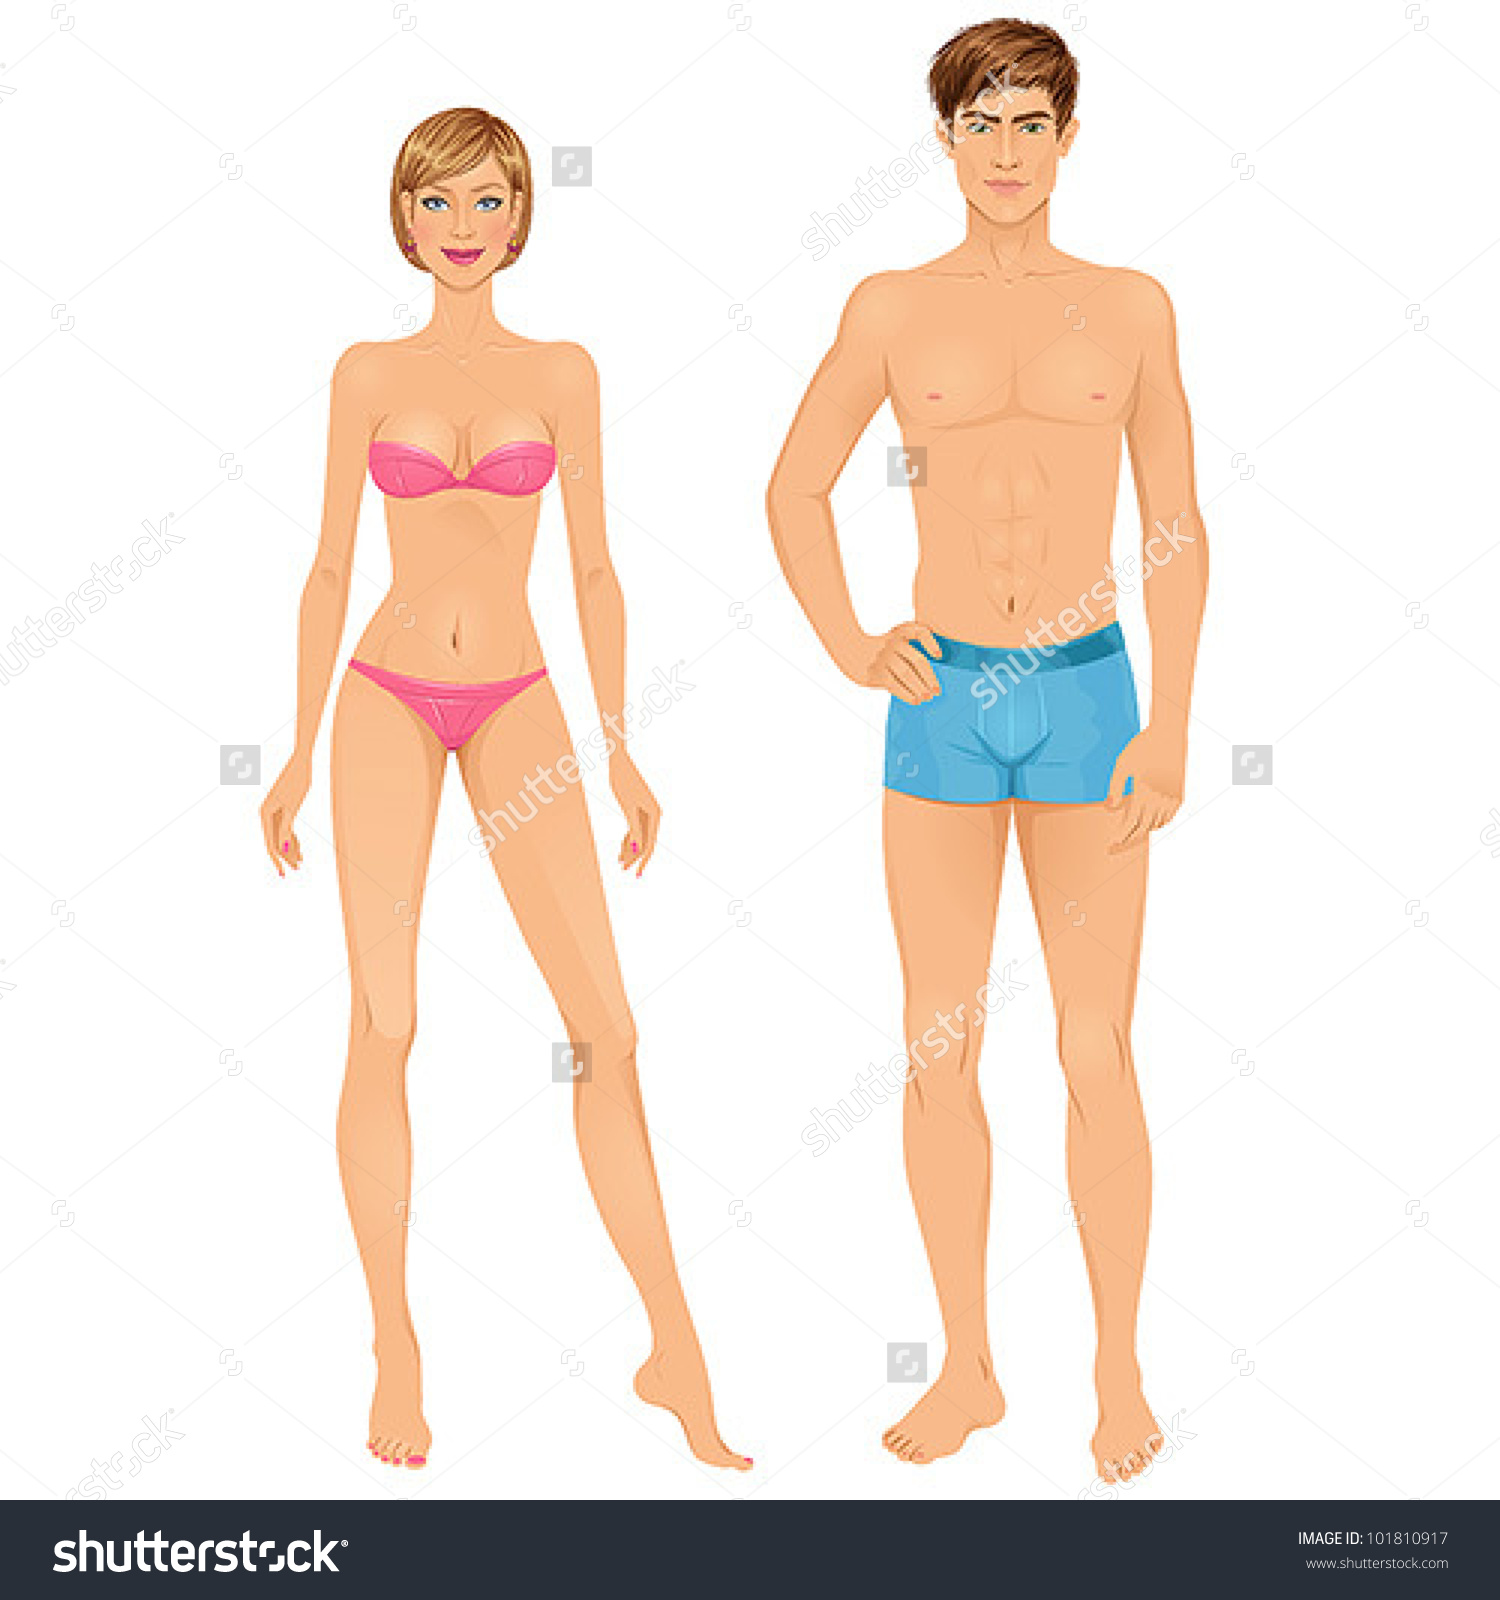 paper doll template woman - doll man clipart clipground